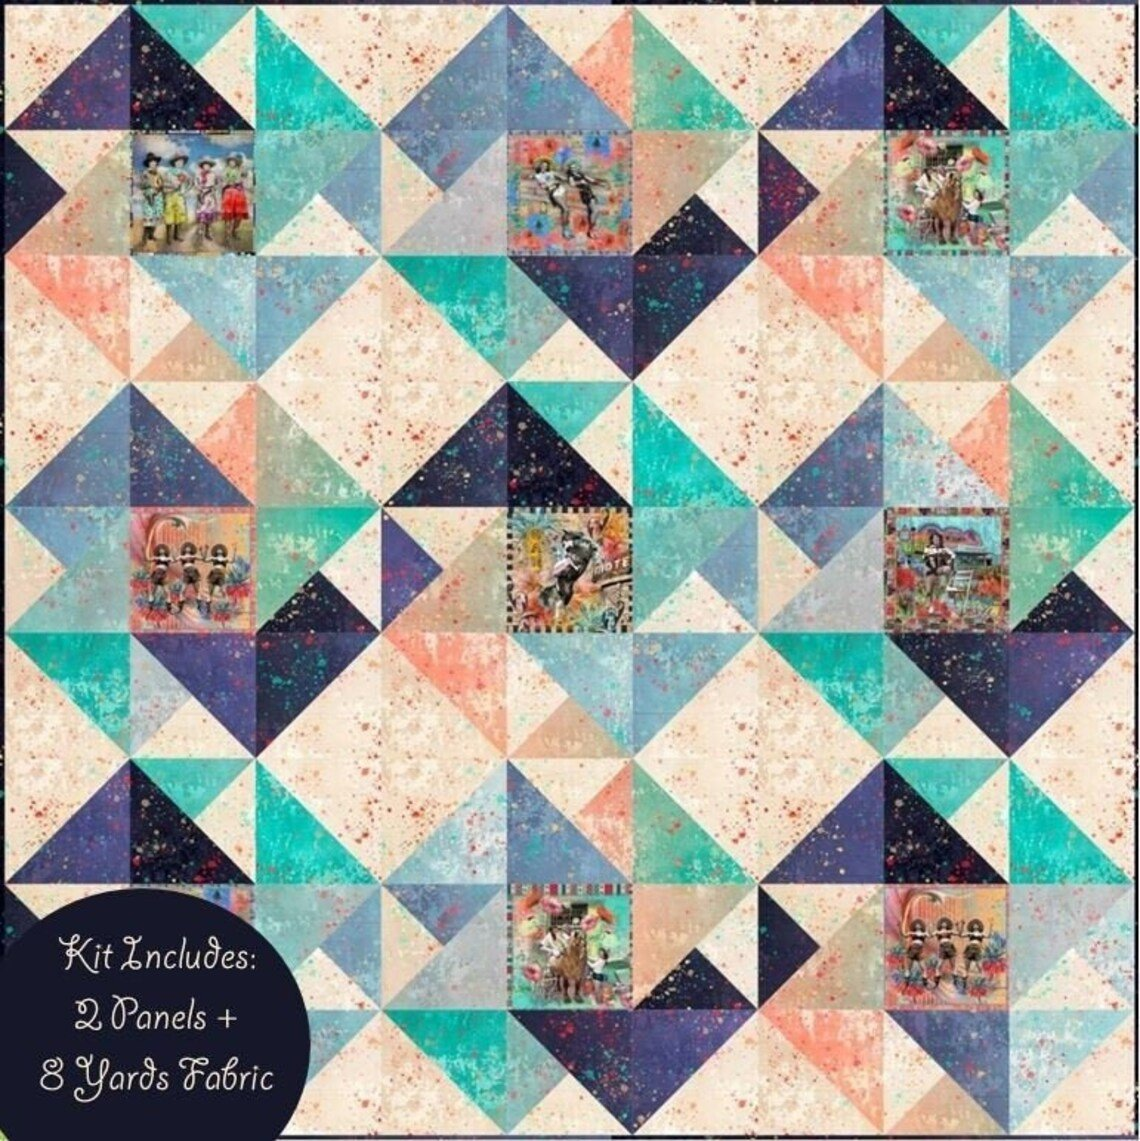 Round Up Quilt Kit with Lipstick Cowgirl Fabric